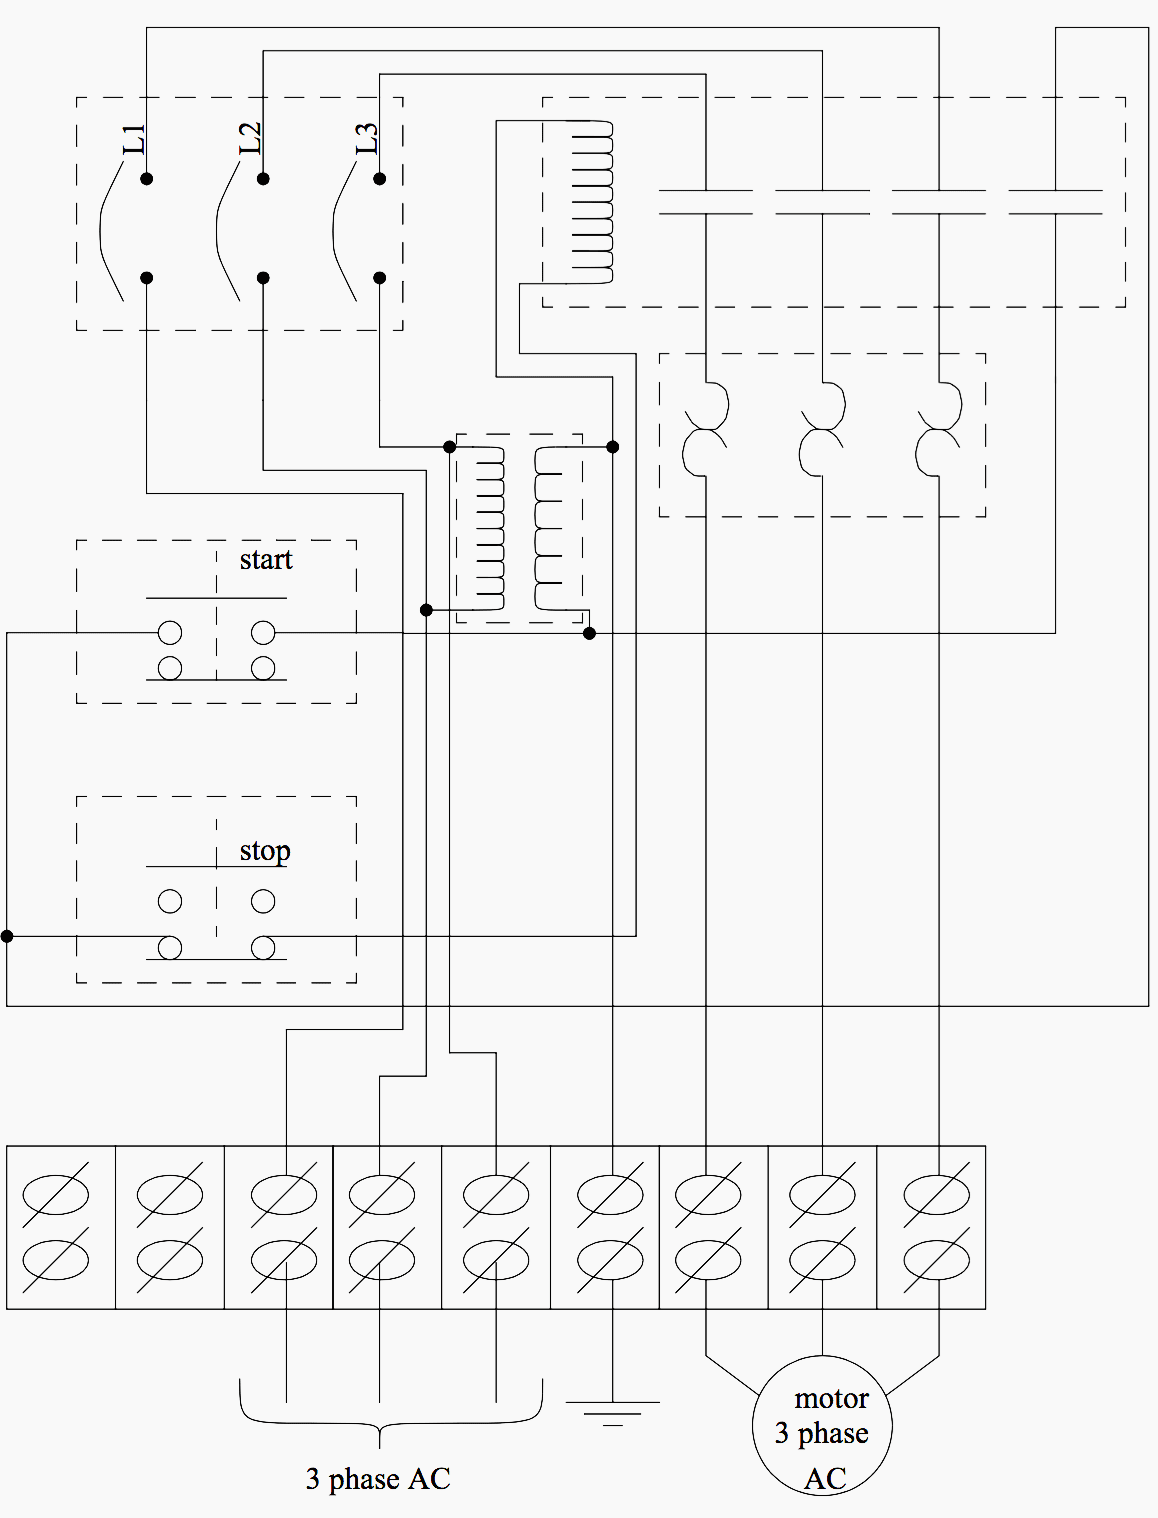 Basic Electrical Design Of A Plc Panel Wiring Diagrams Eep Home Blue Wire Basics Final